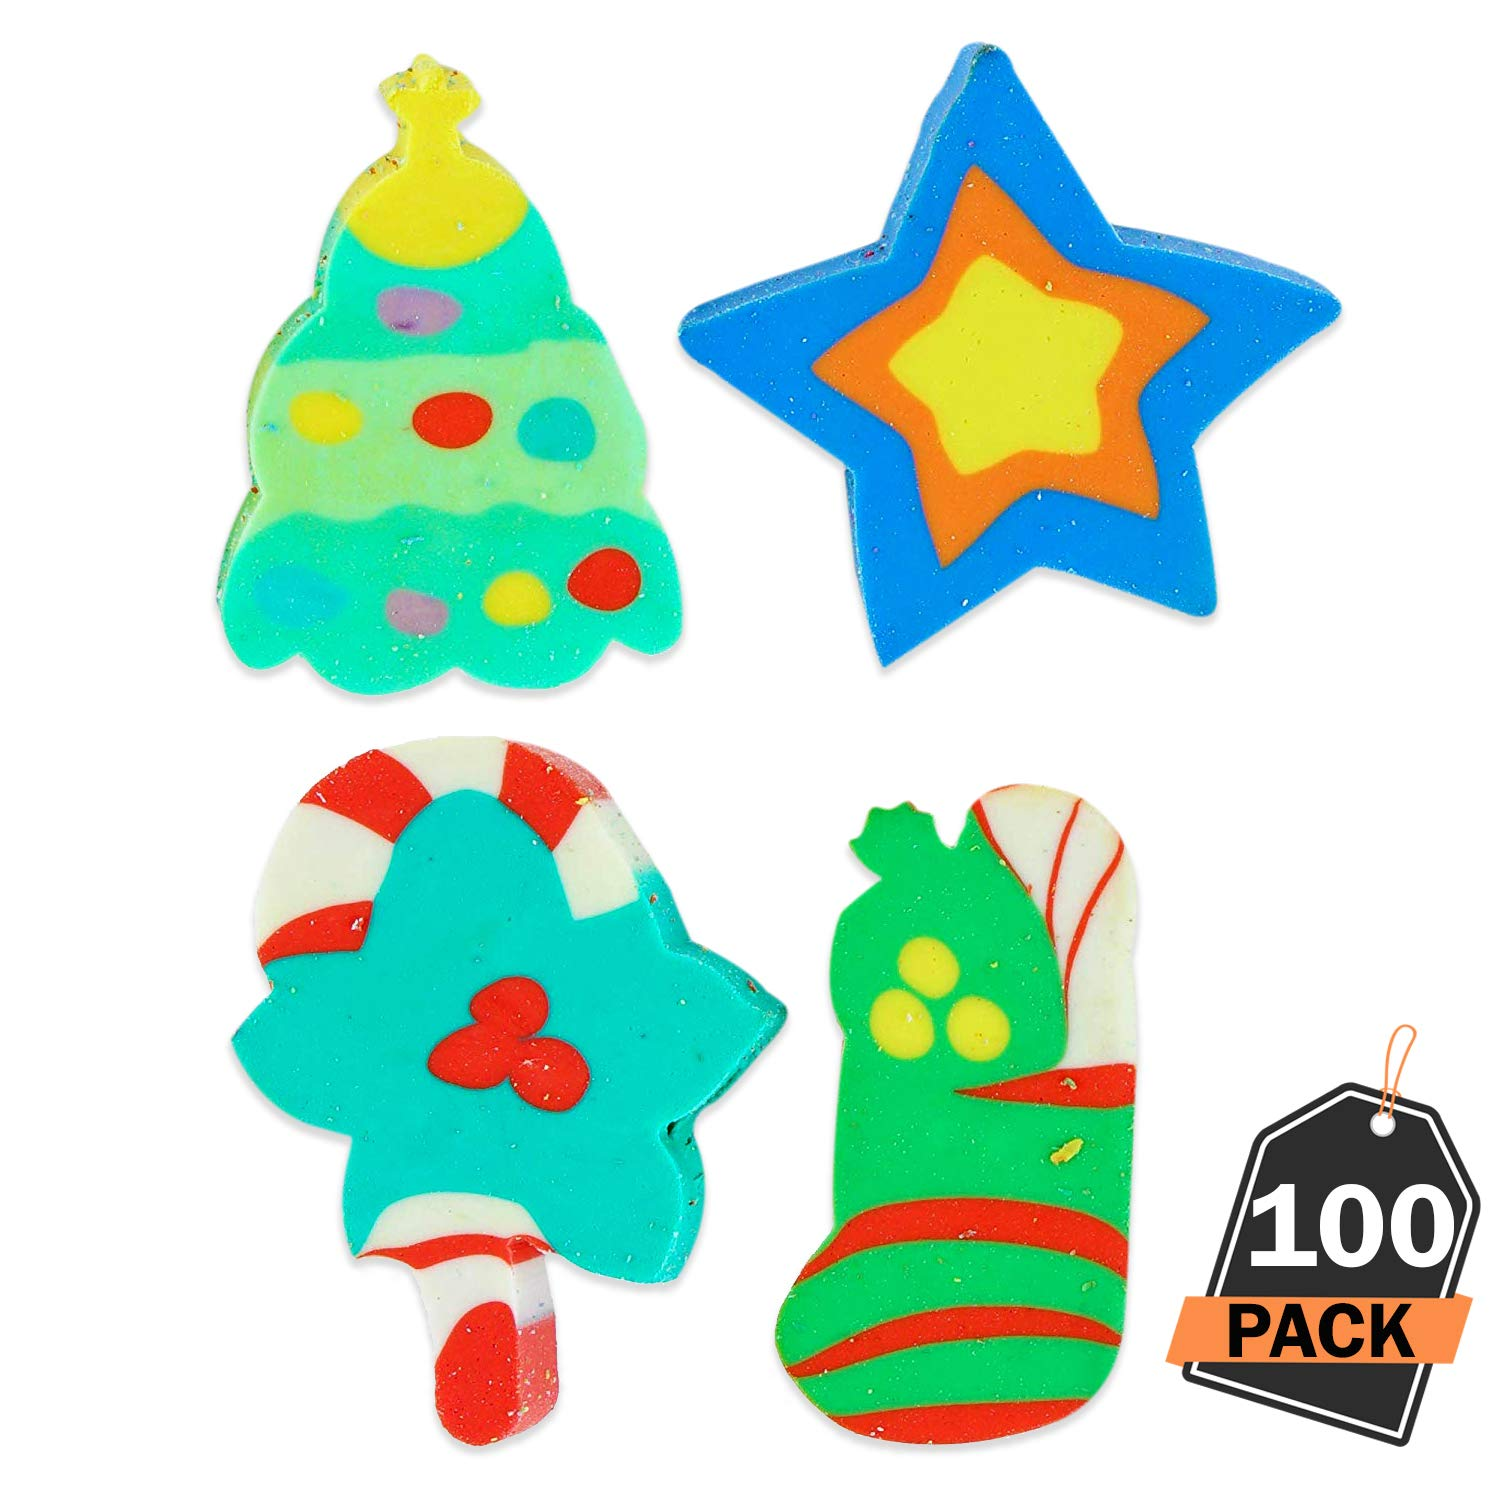 Christmas Stocking Fillers Toys Advent Treat Present Gift Party School